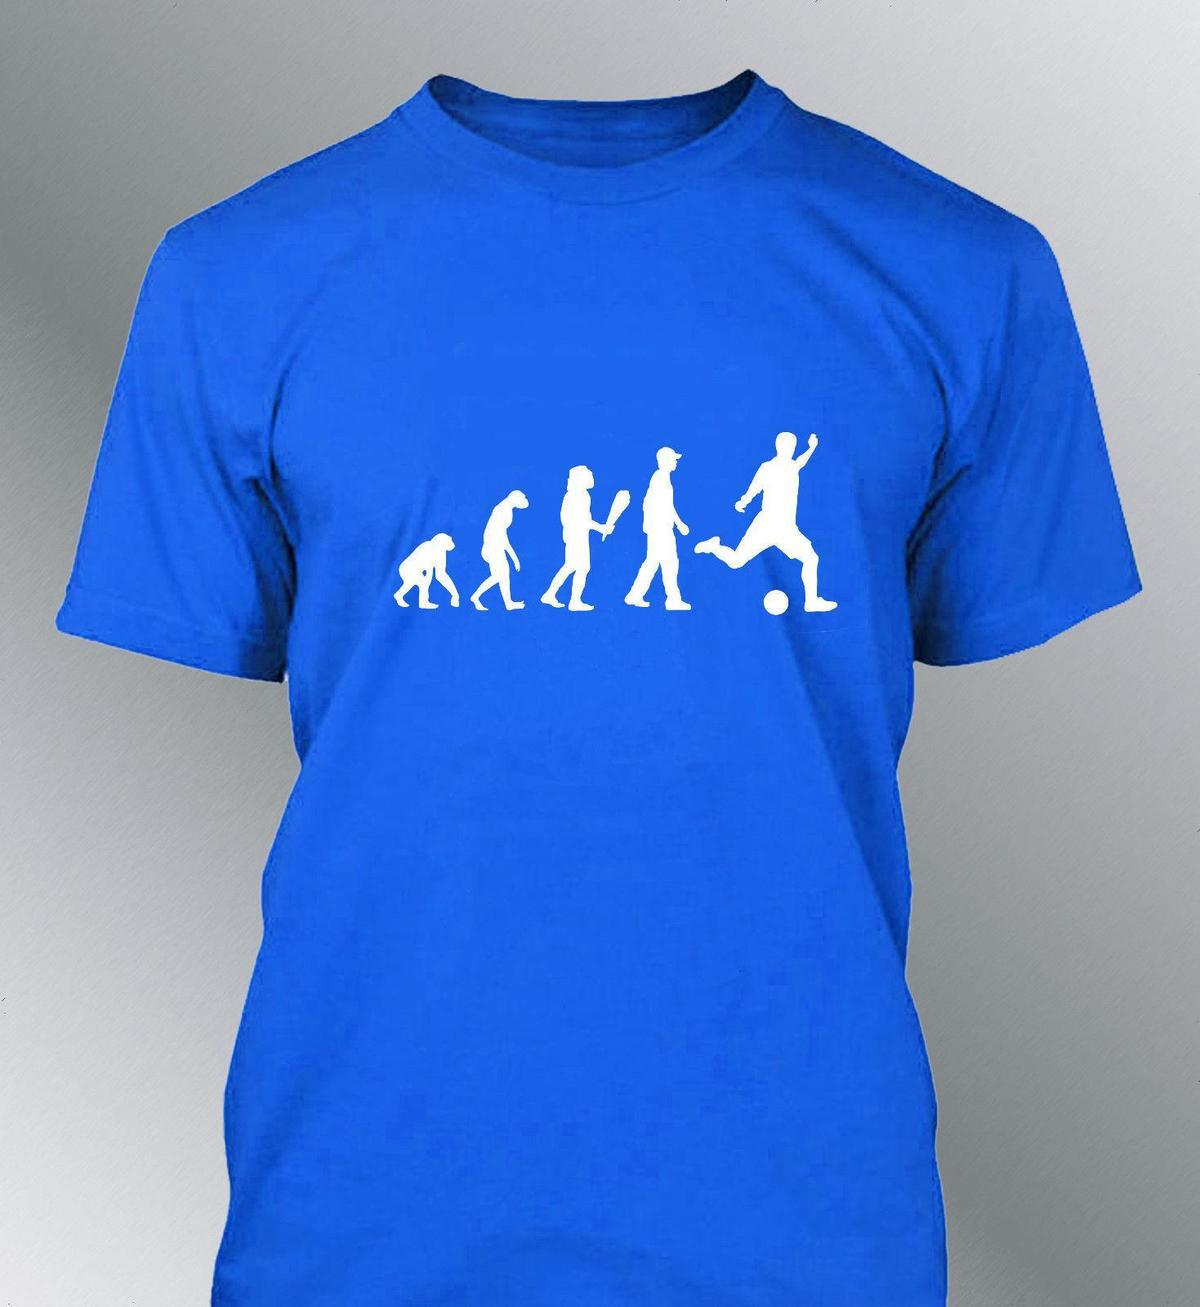 Tee Shirt Personnalise Homme Evolution Foot M L Xl Humour Human